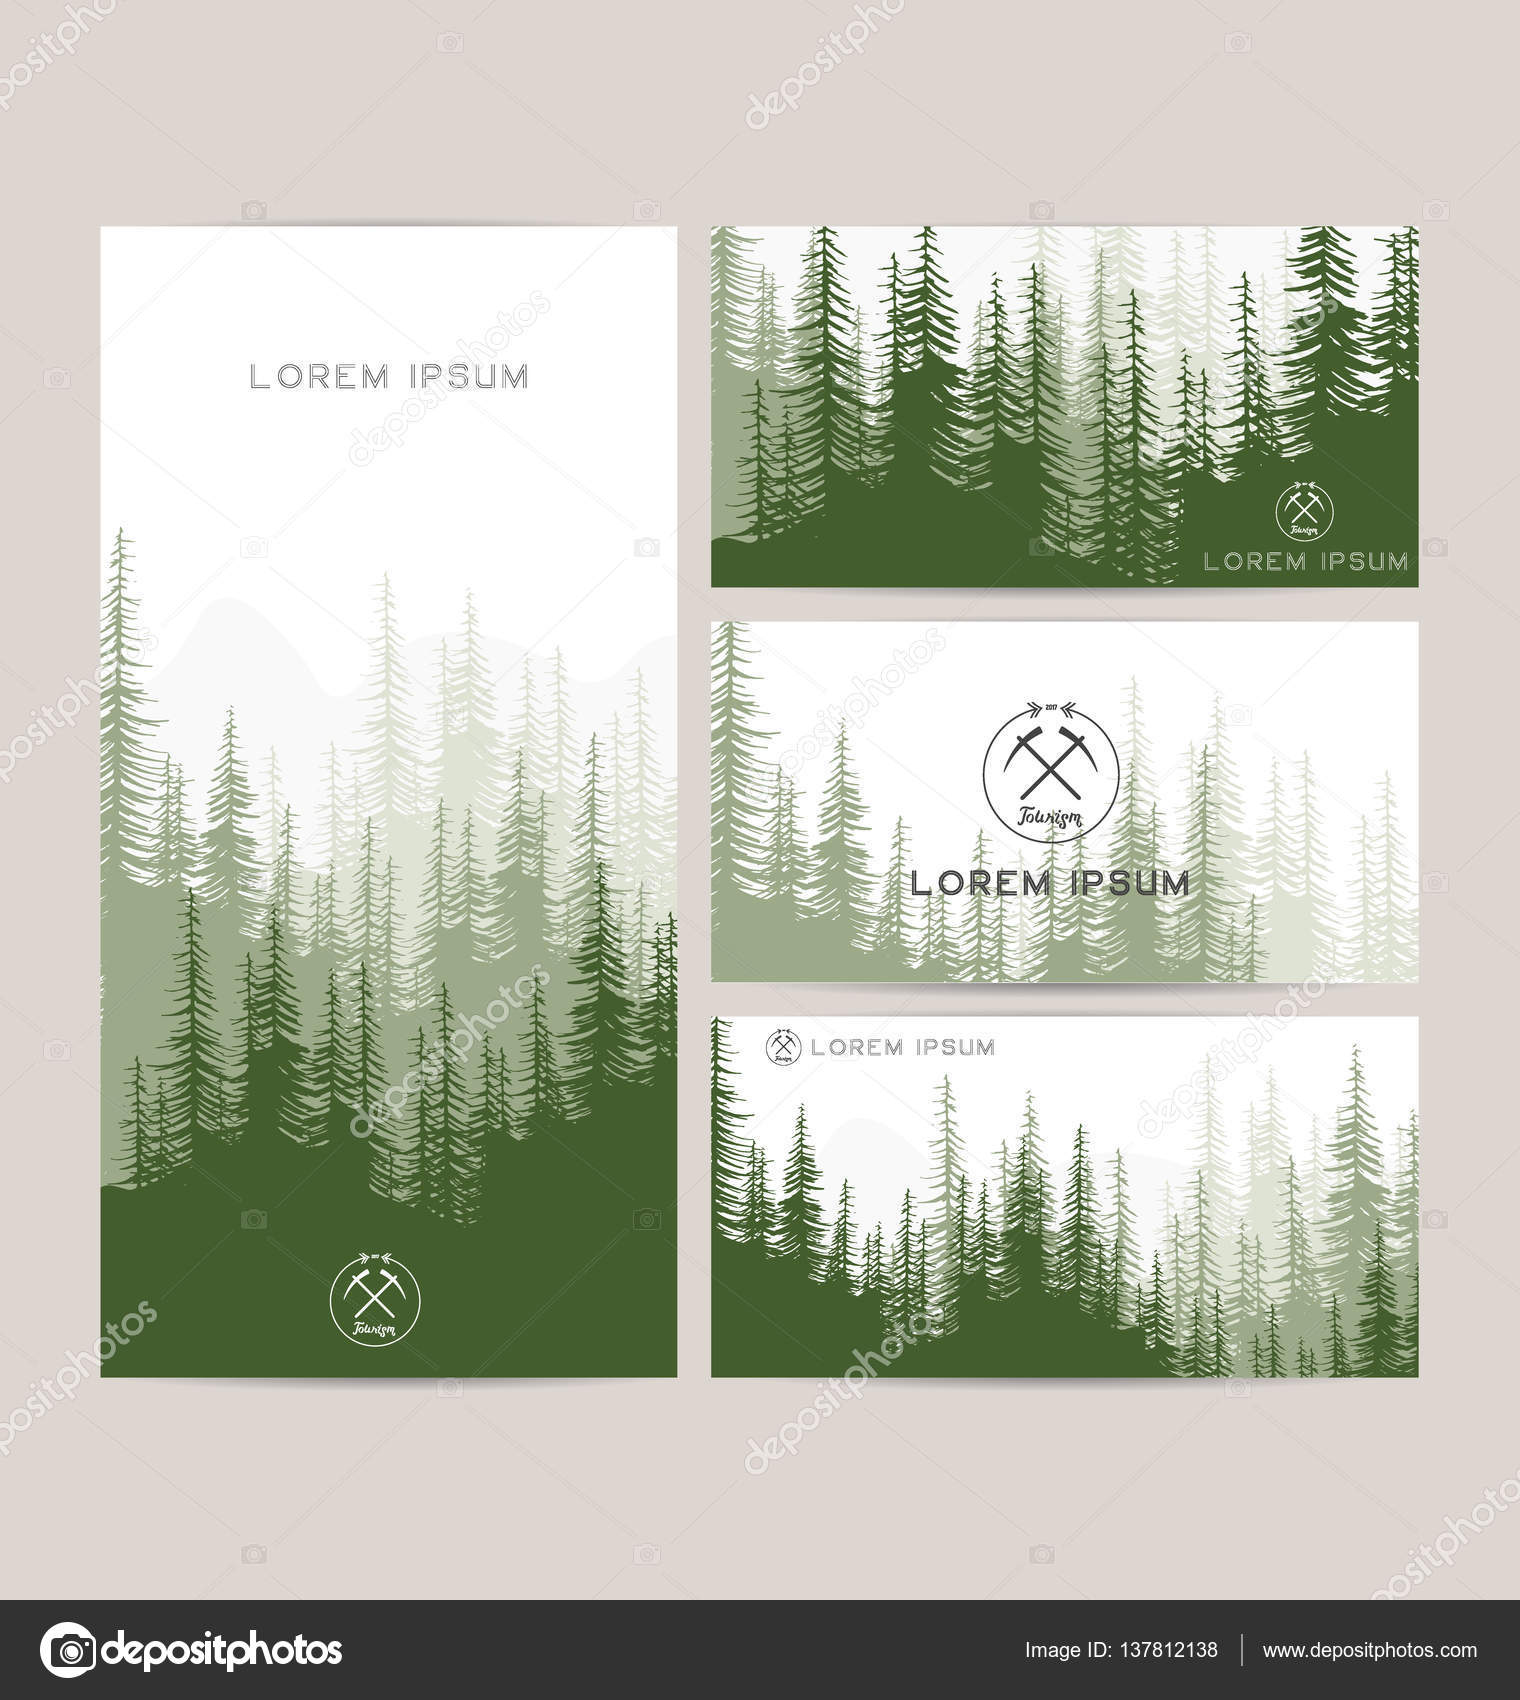 Business cards design set of green forest and mountains backgrounds business cards design set of green forest and mountains backgrounds templates design for greeting reheart Gallery